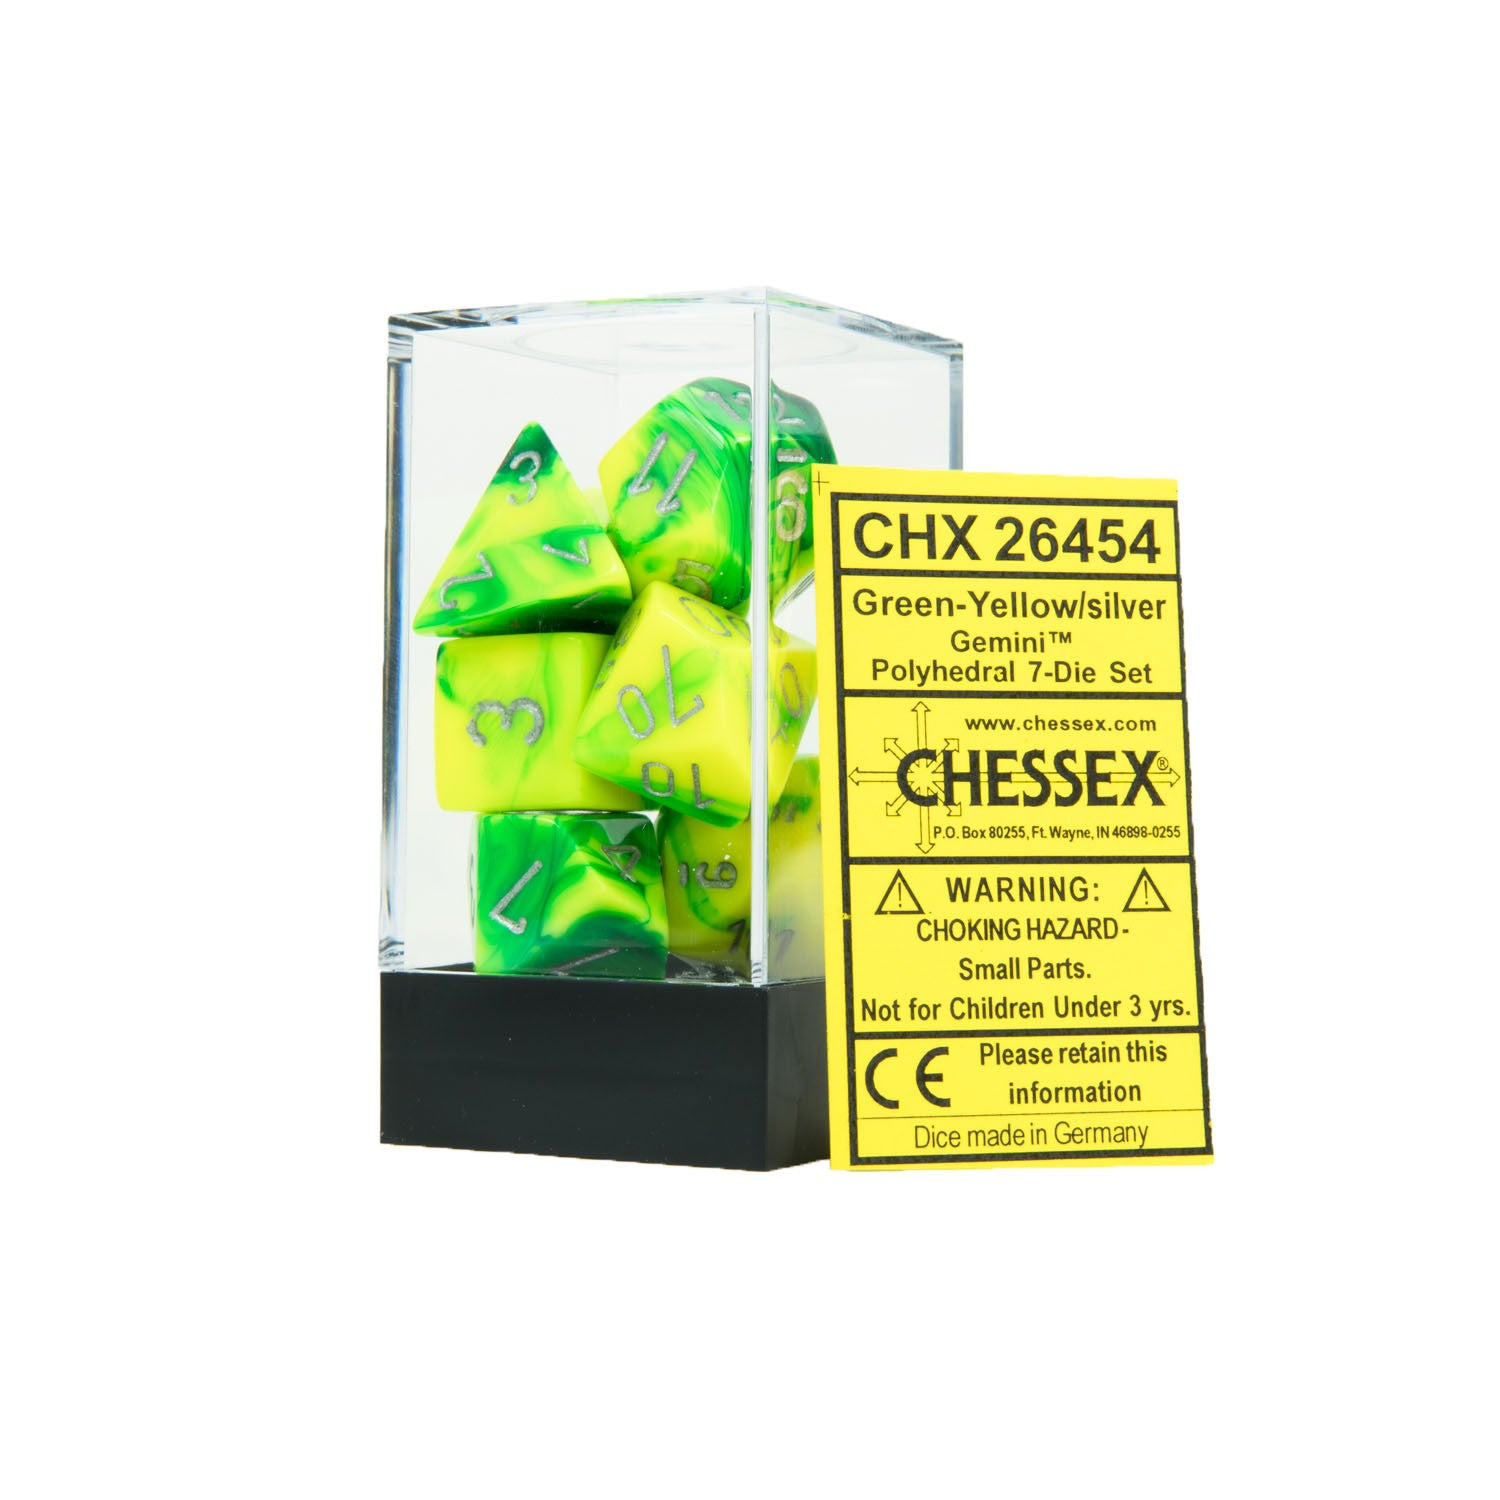 Chessex CHX26454 Green-Yellow w/silver Gemini™ Polyhedral Dice Set